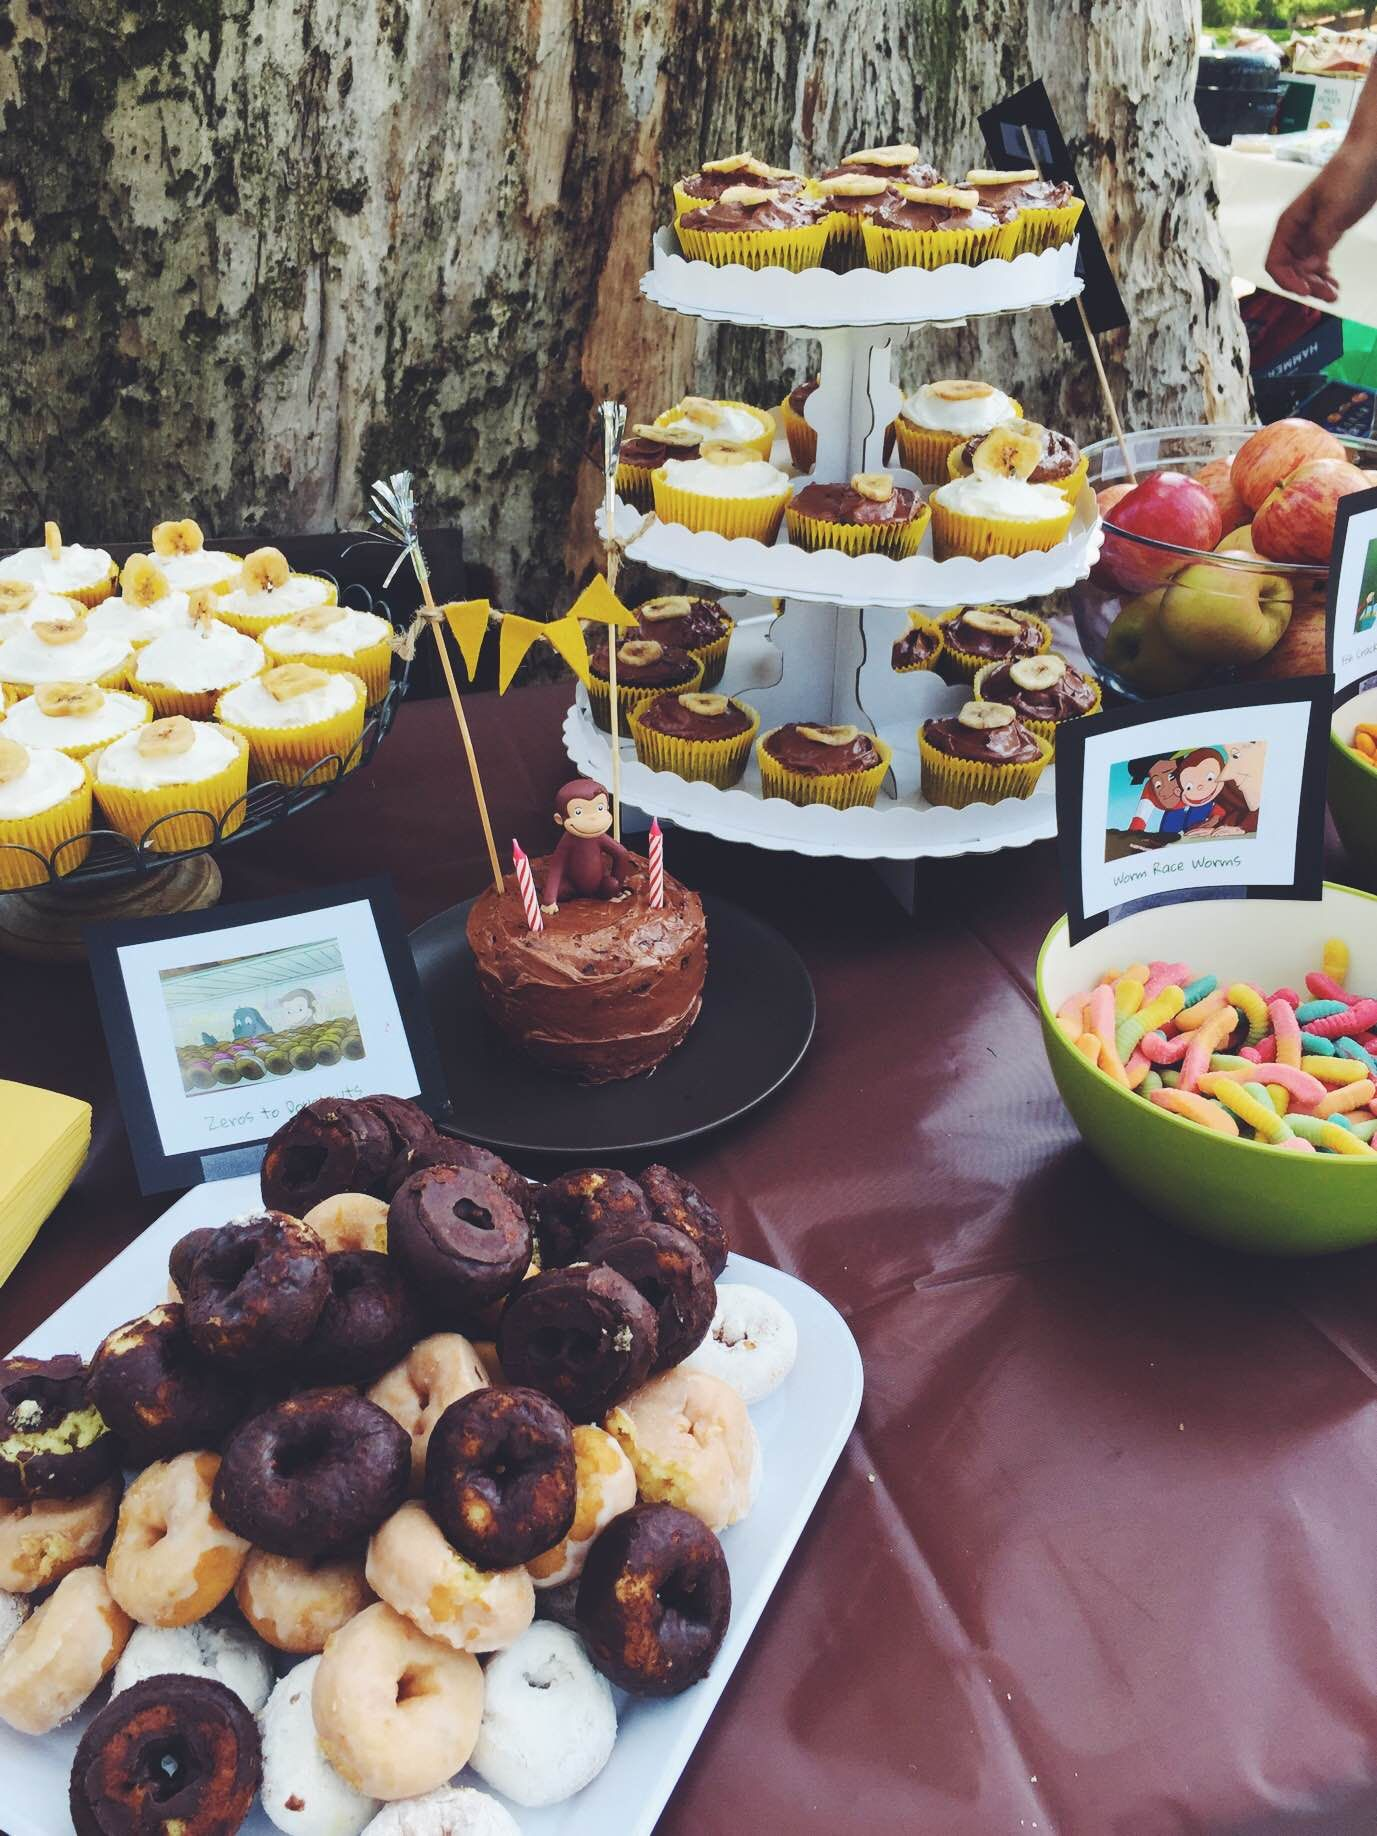 Curious George Party #curiousgeorge #curiousgeorgeparty #curiousgeorgepartyfoodideas #curiousgeorgetoddlerparty